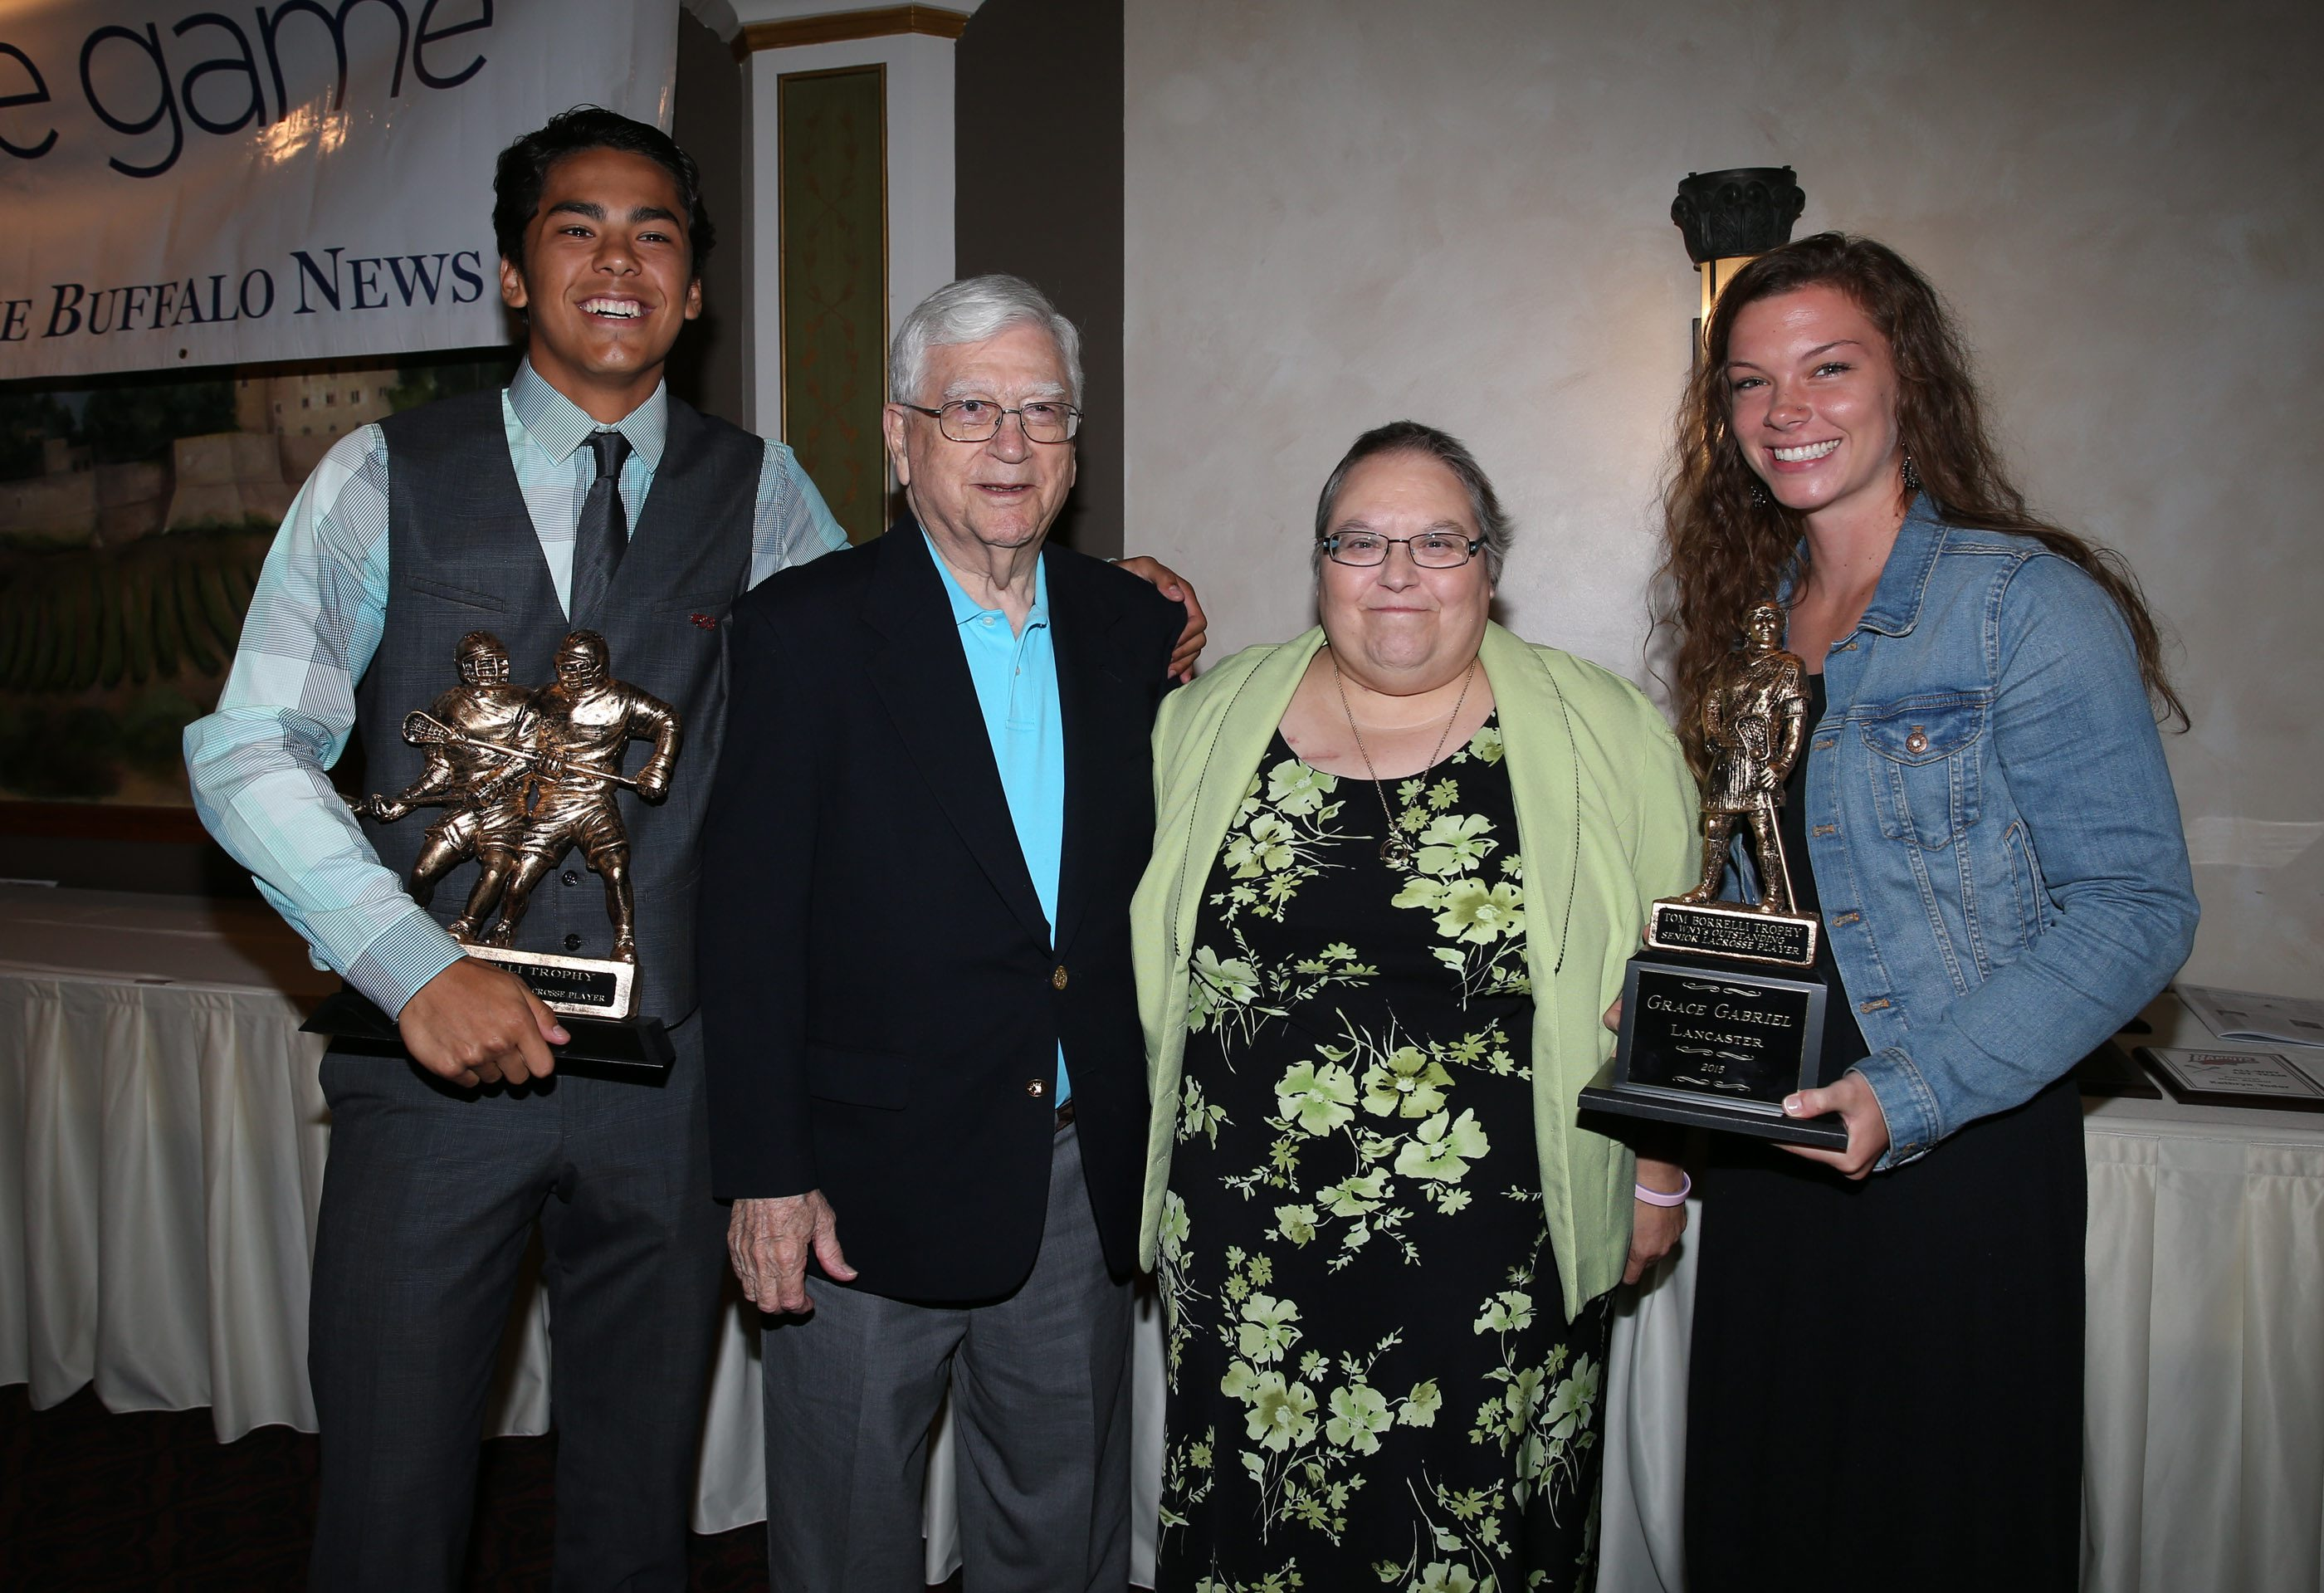 2015 Borrelli Award winners Larson Sundown of Akron (far left) and Grace Gabriel of Lancaster (far right) pose with George Borrelli (Tom's father) and Karen Borrelli (Tom's widow) at last year's banquet. (James P. McCoy/ Buffalo News)